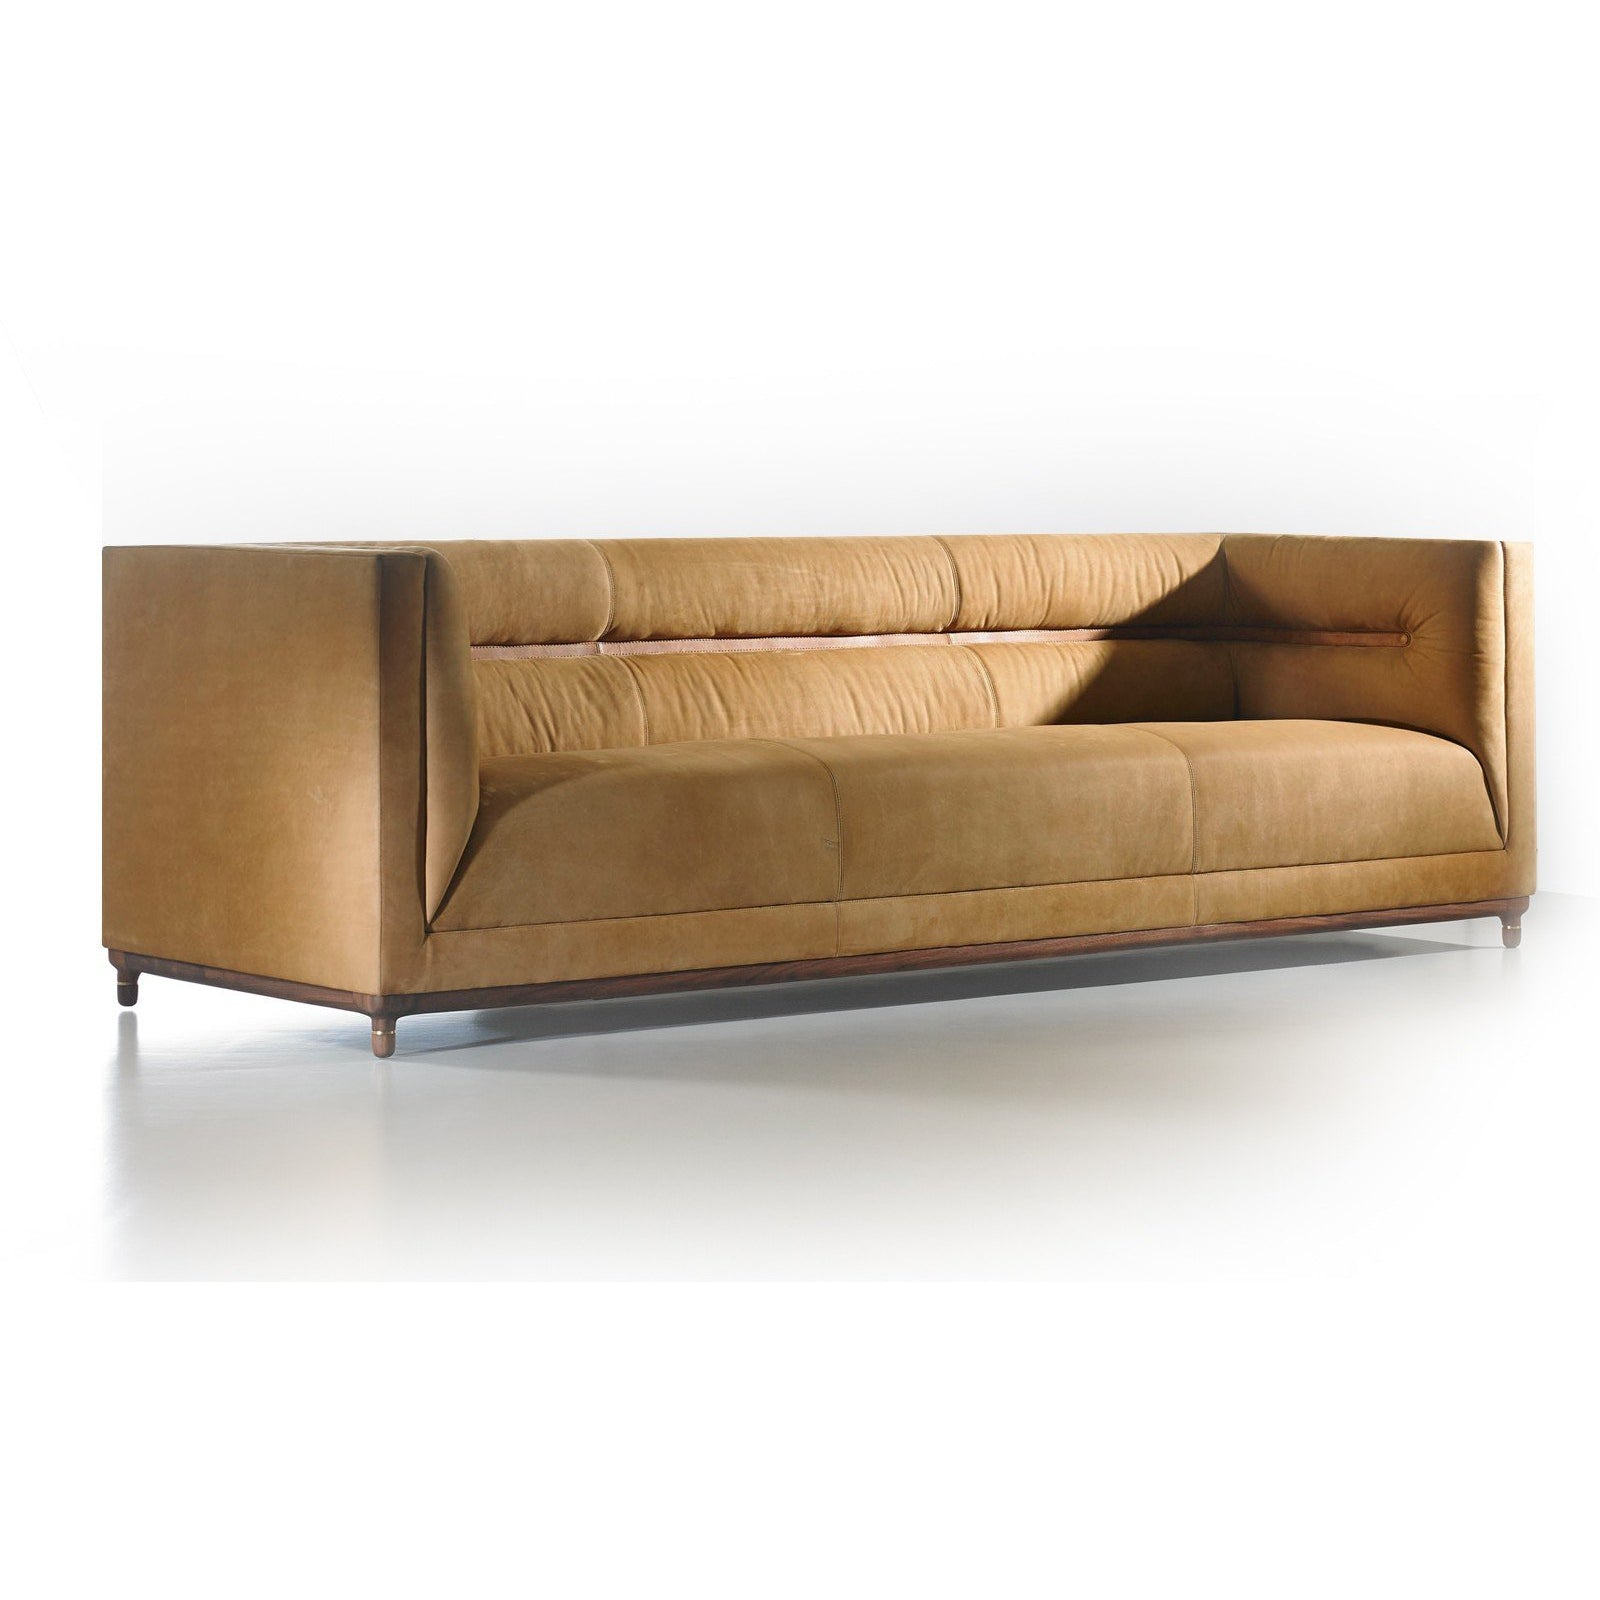 cortez espresso sleeper sofa leather faux adjustable button storage tufted pin brown